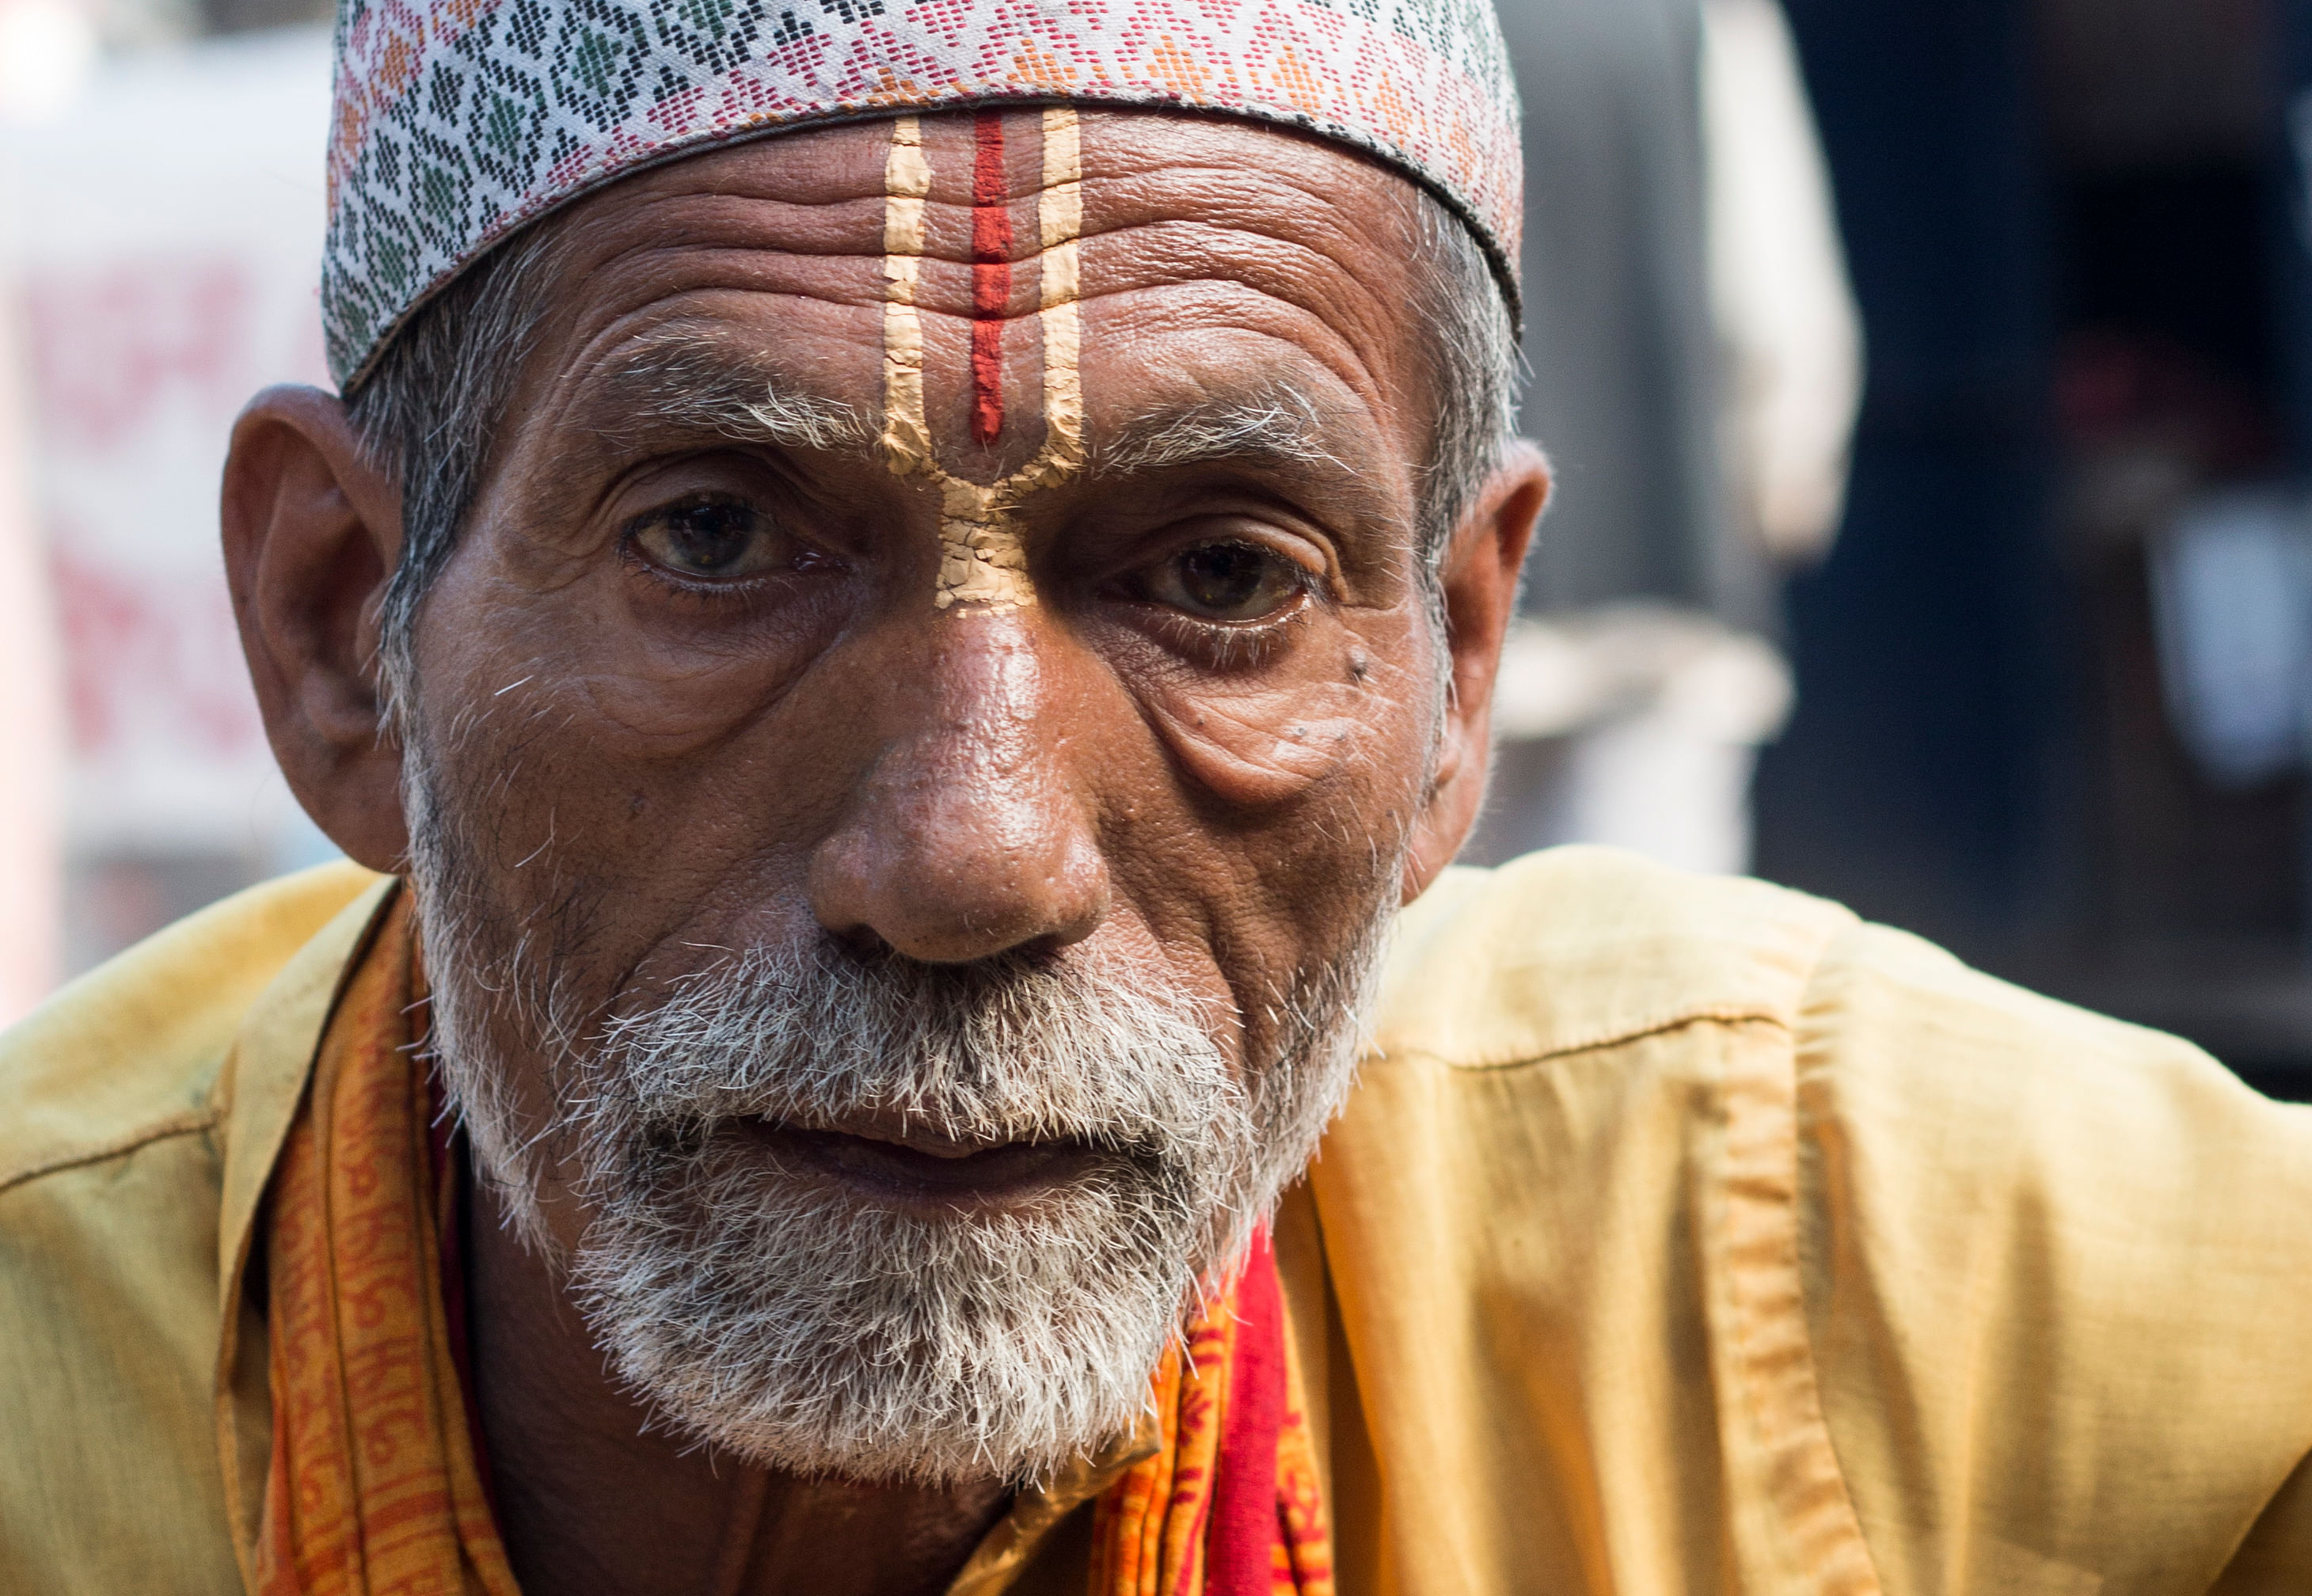 Brahmin Priest stares away from the camera